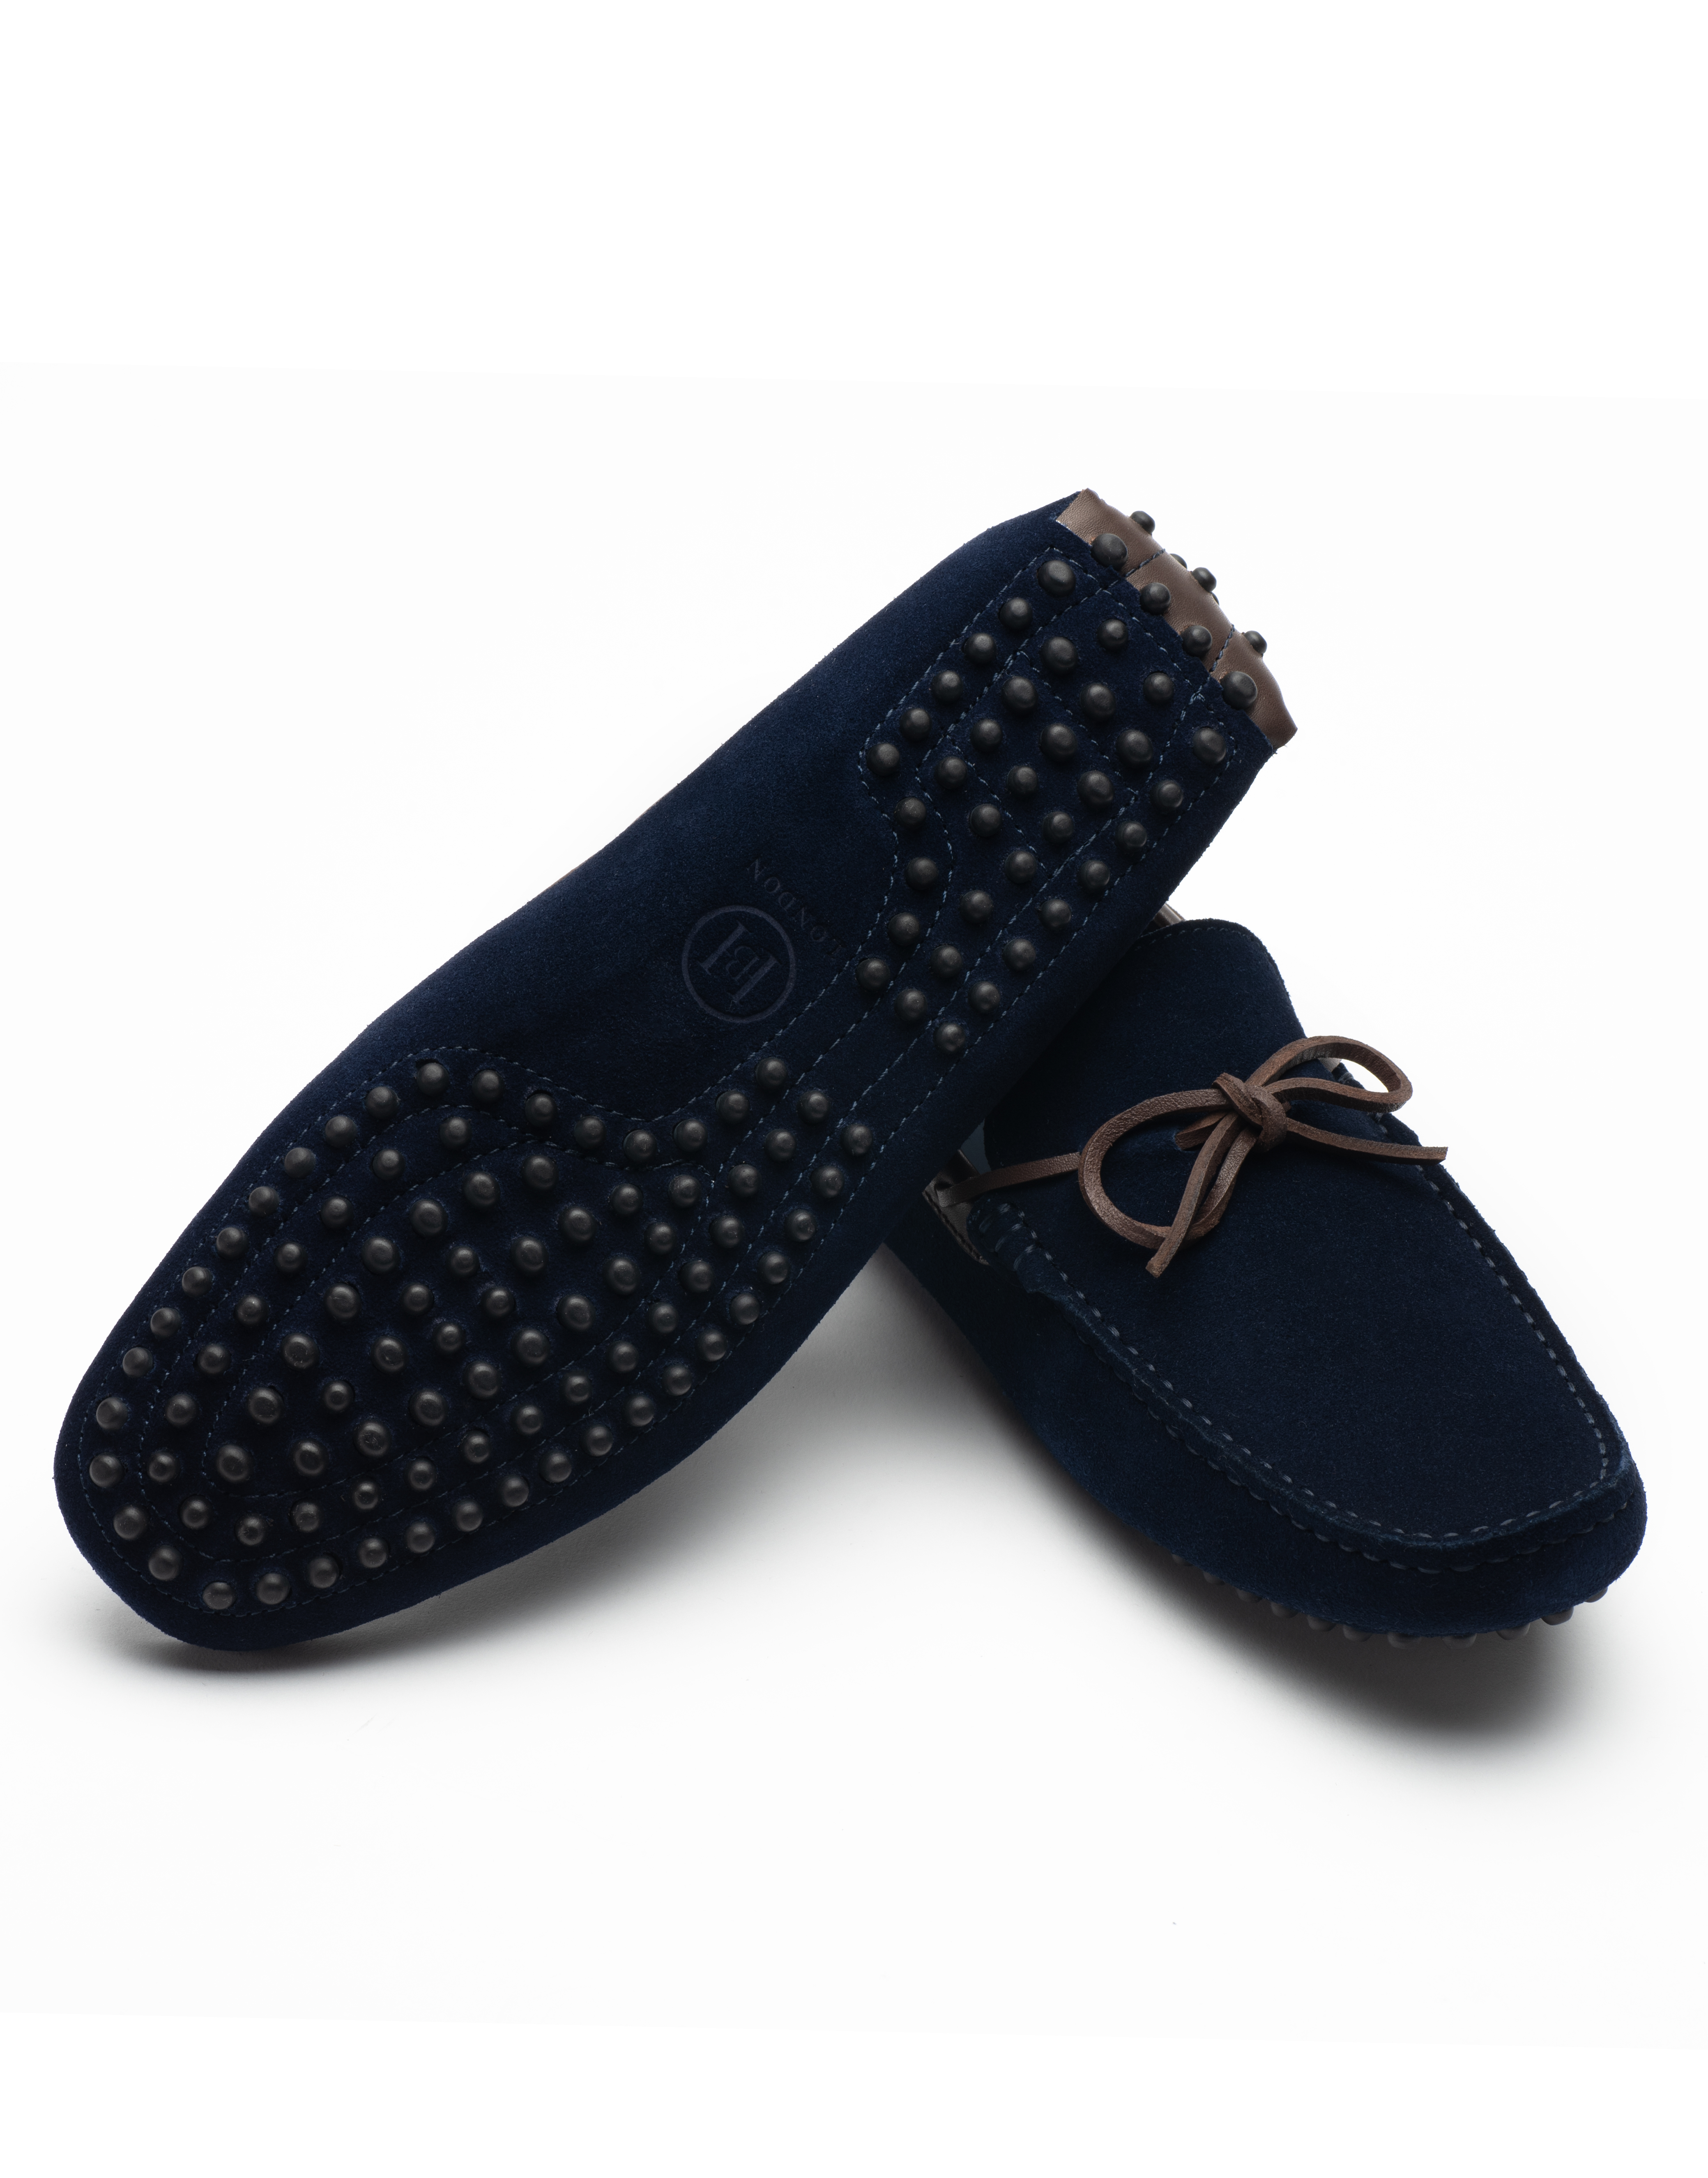 Heel _ Buckle London -Shoes-HF101-1-Drivers-Dark Blue suede with tan tassel-3